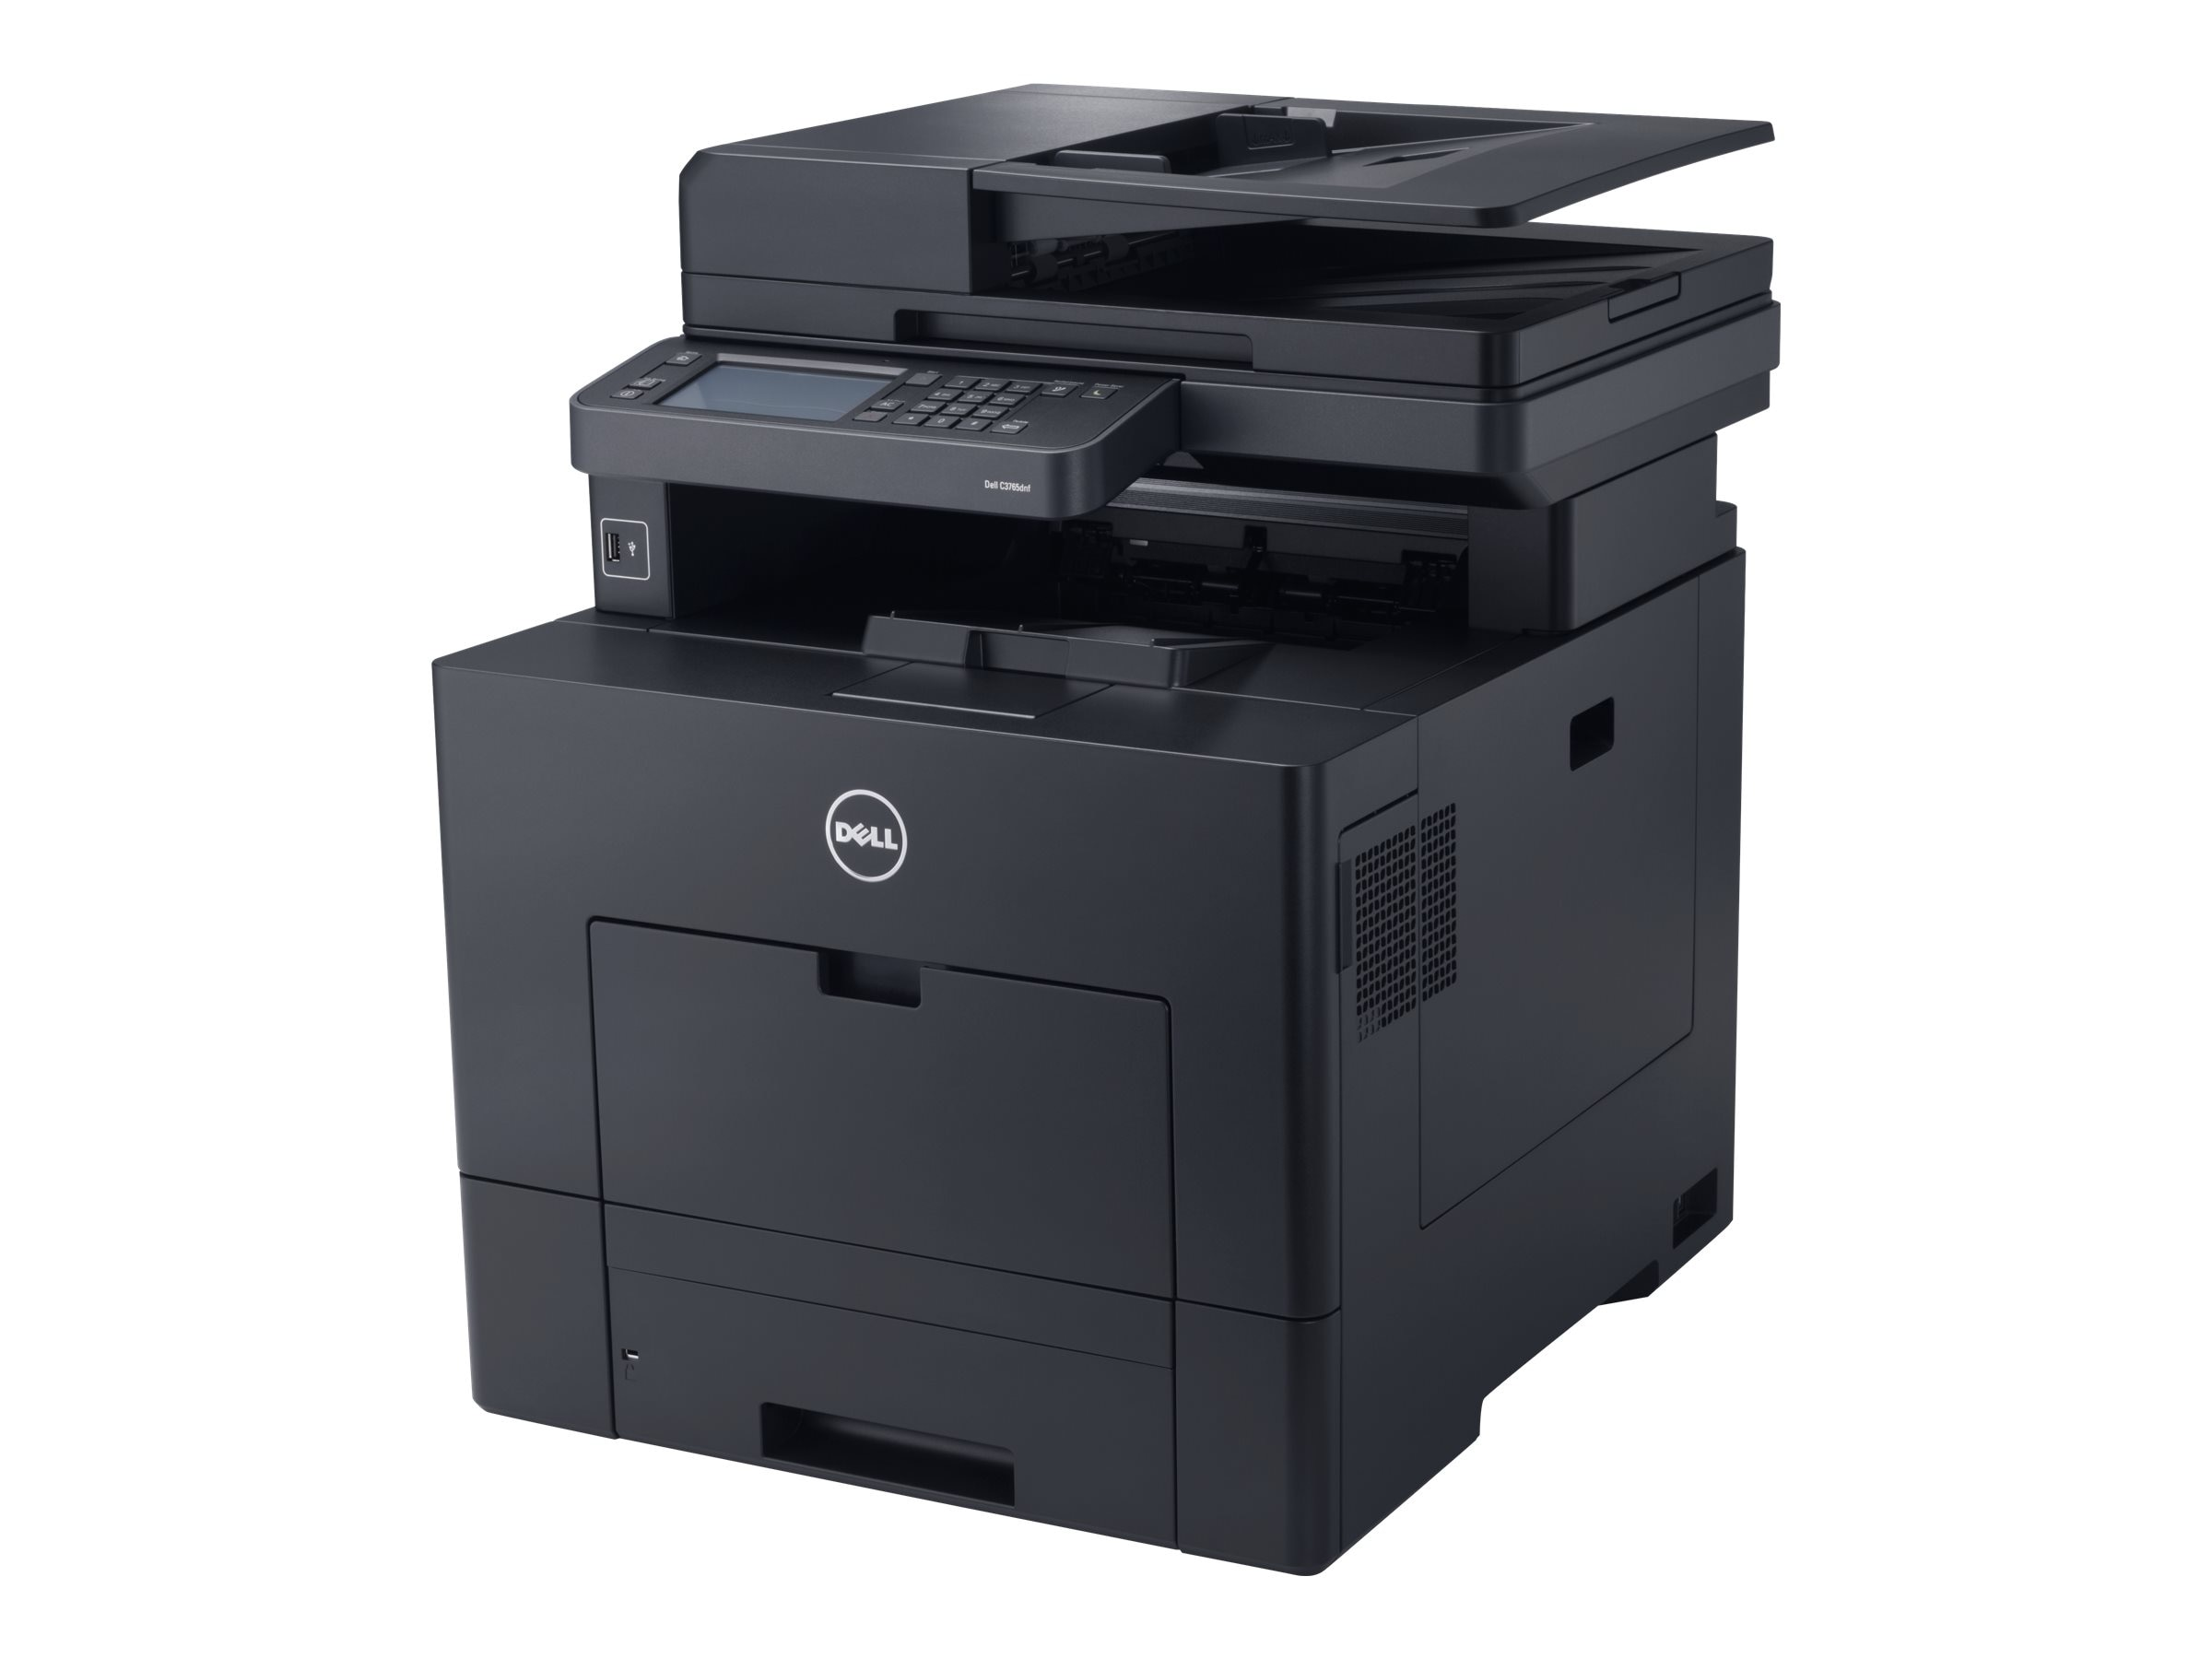 Dell C3765dnf Multifunction Color Laser Printer, C3765DNF